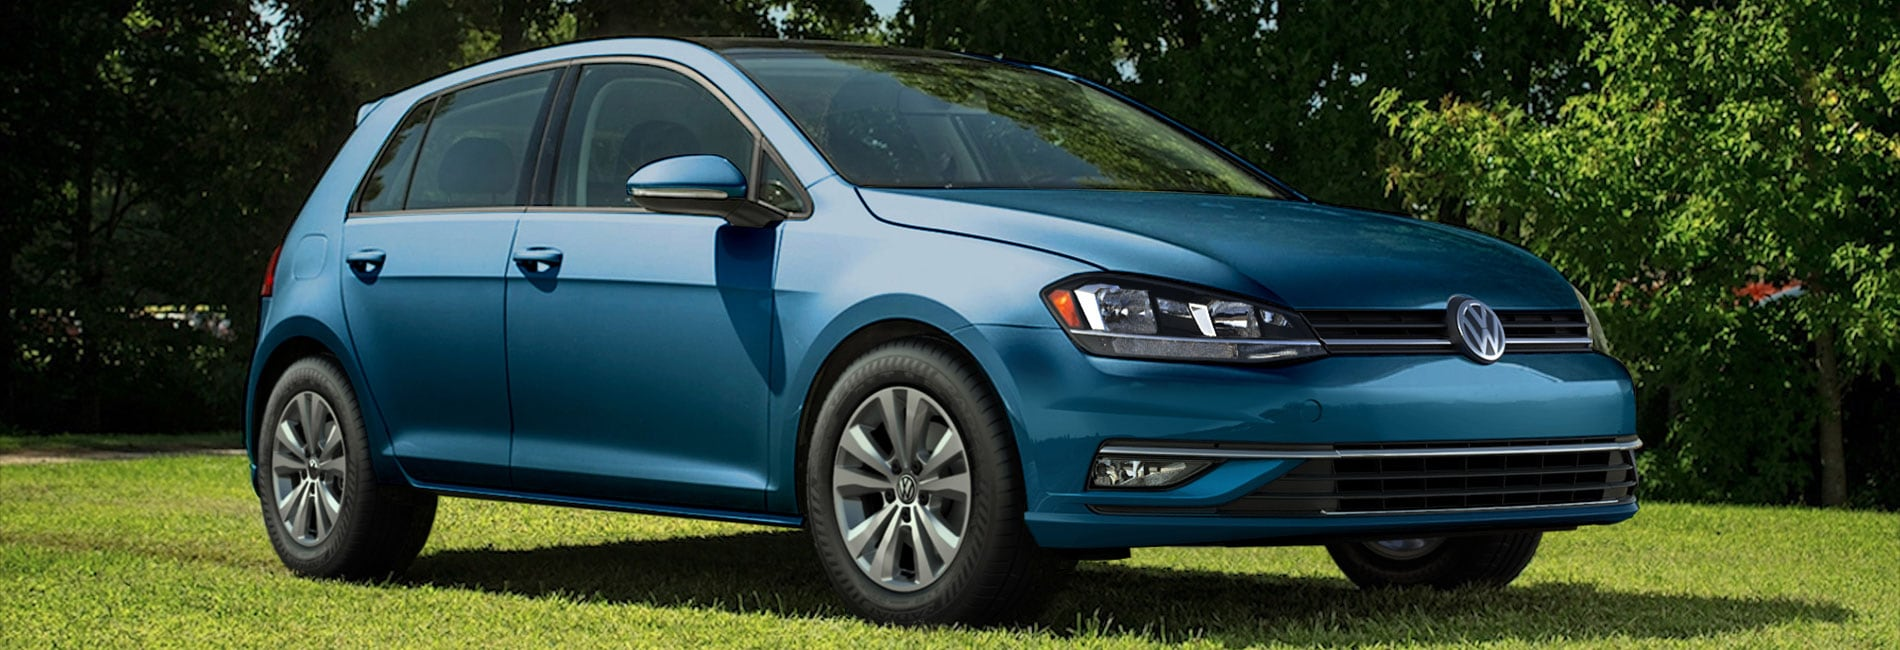 Volkswagen Golf Exterior Vehicle Features